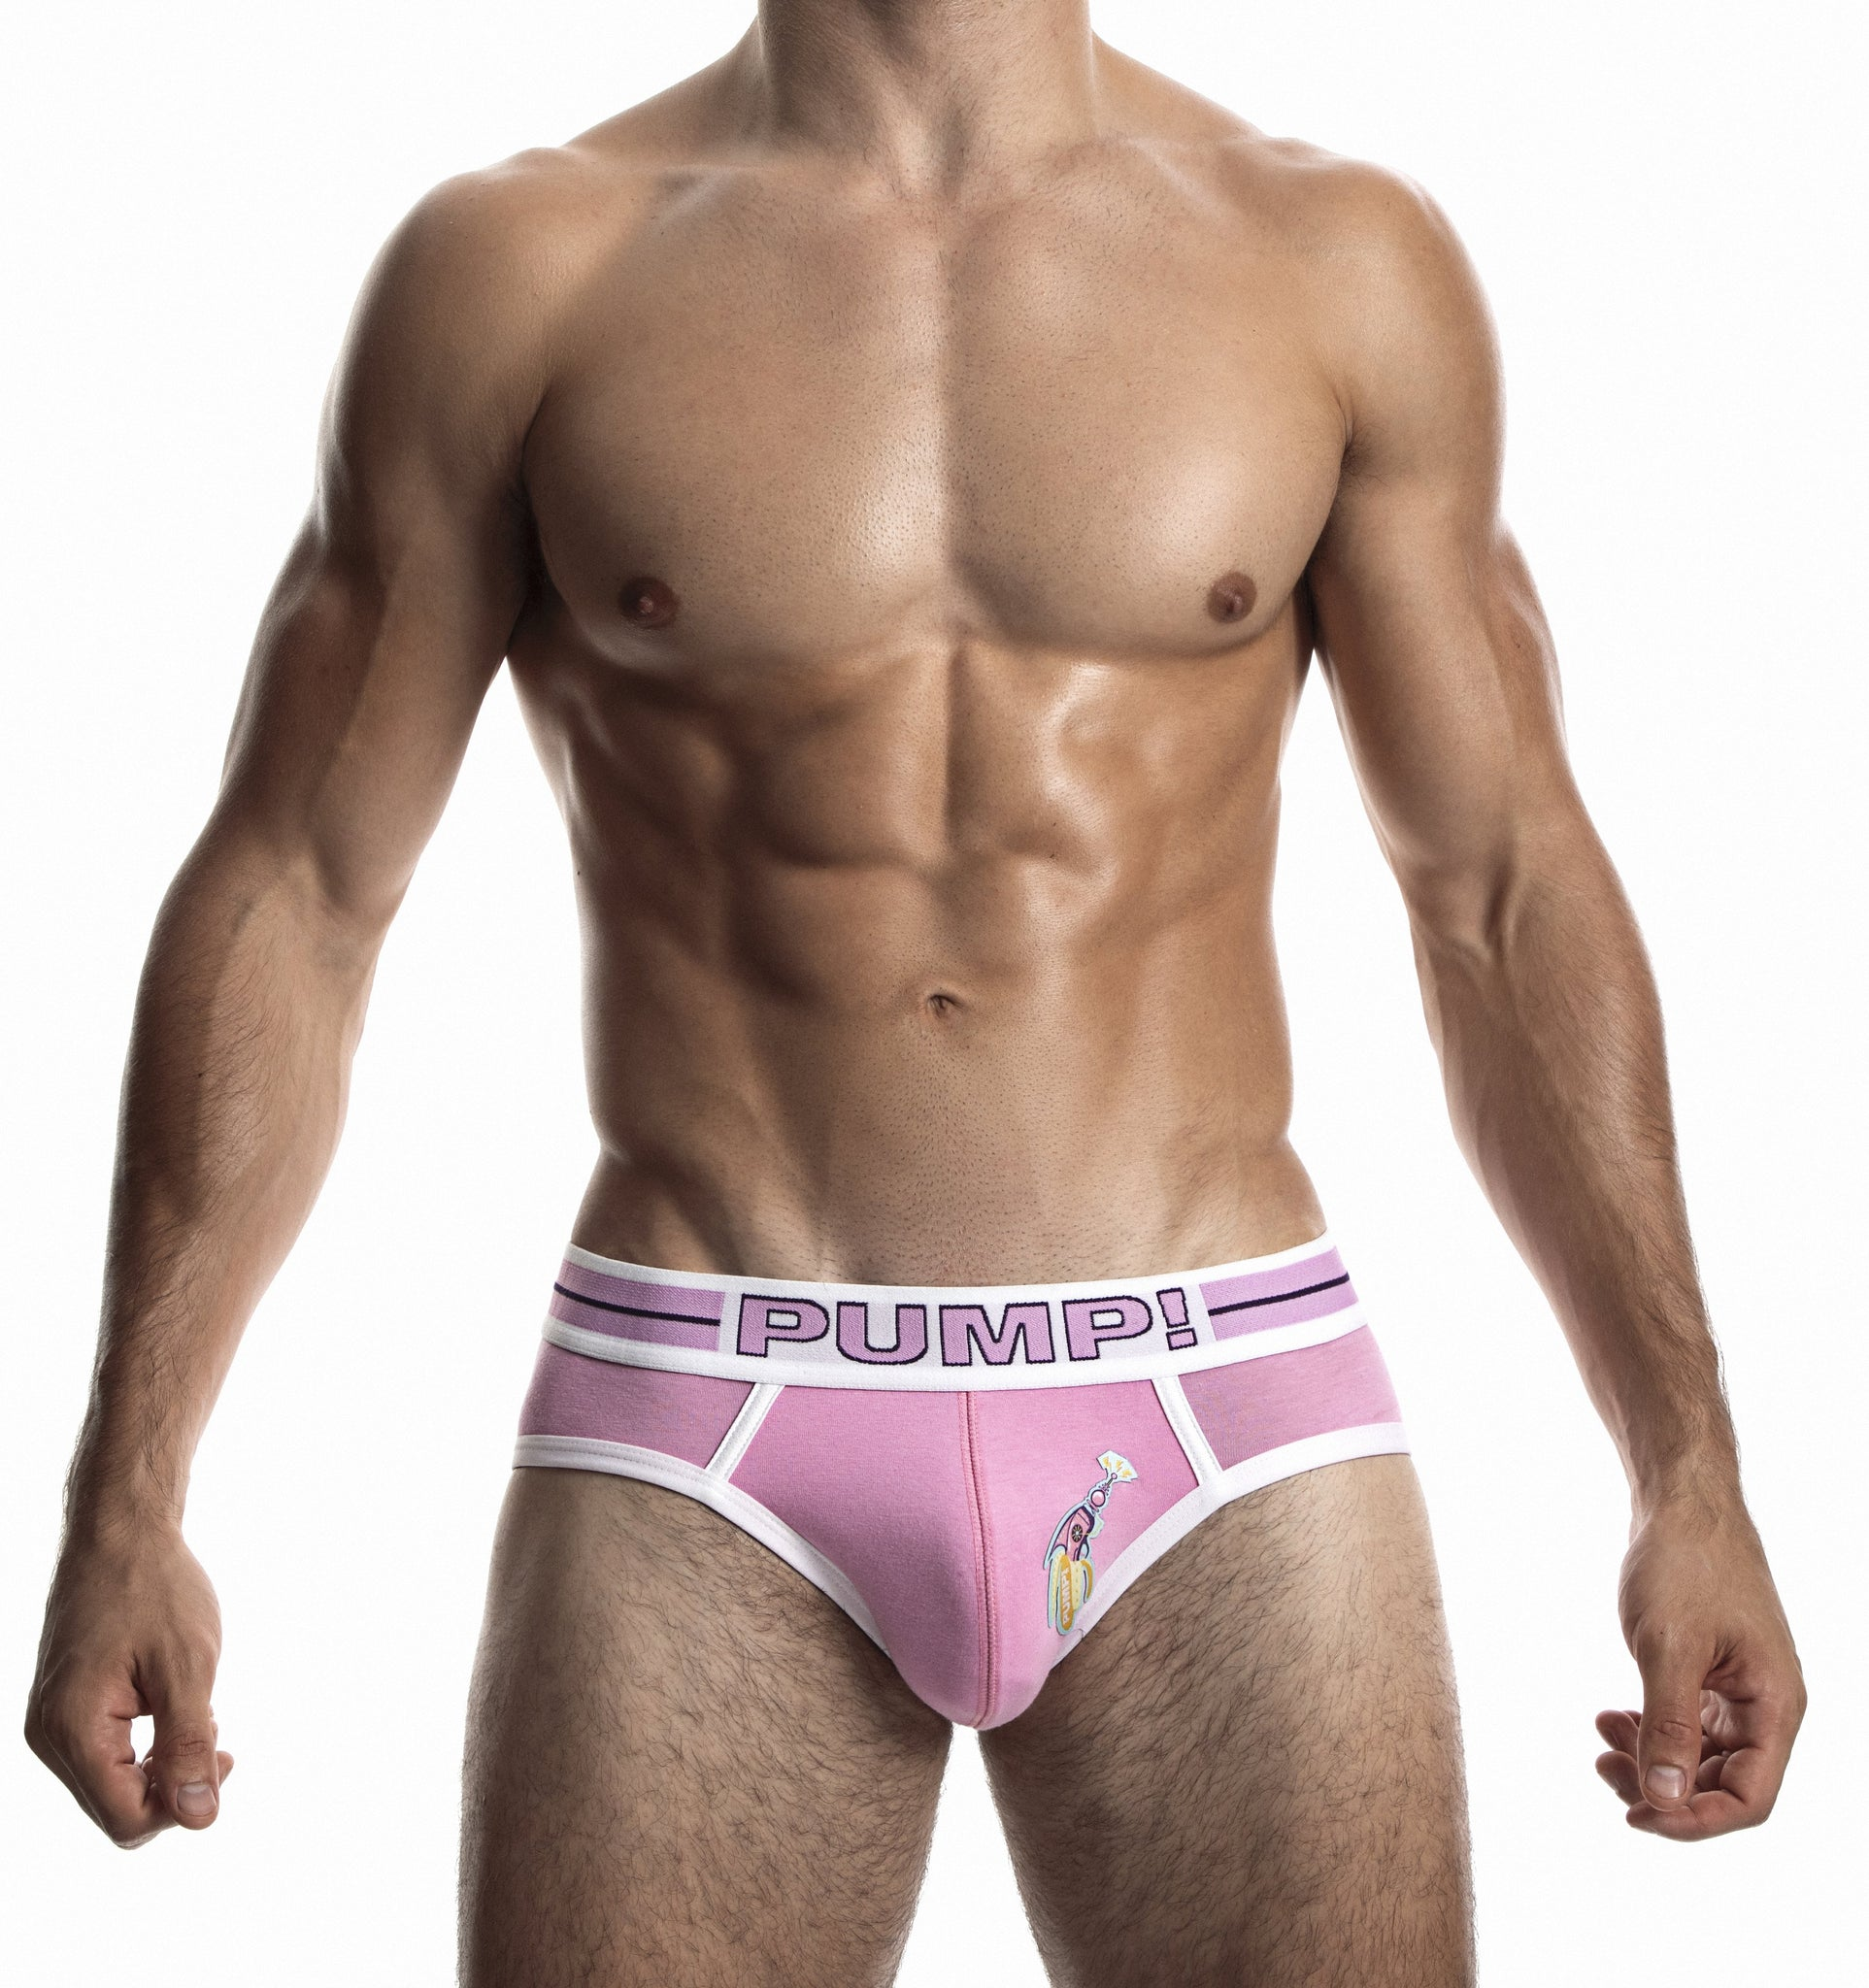 PUMP! SpaceCandy Pink Brief